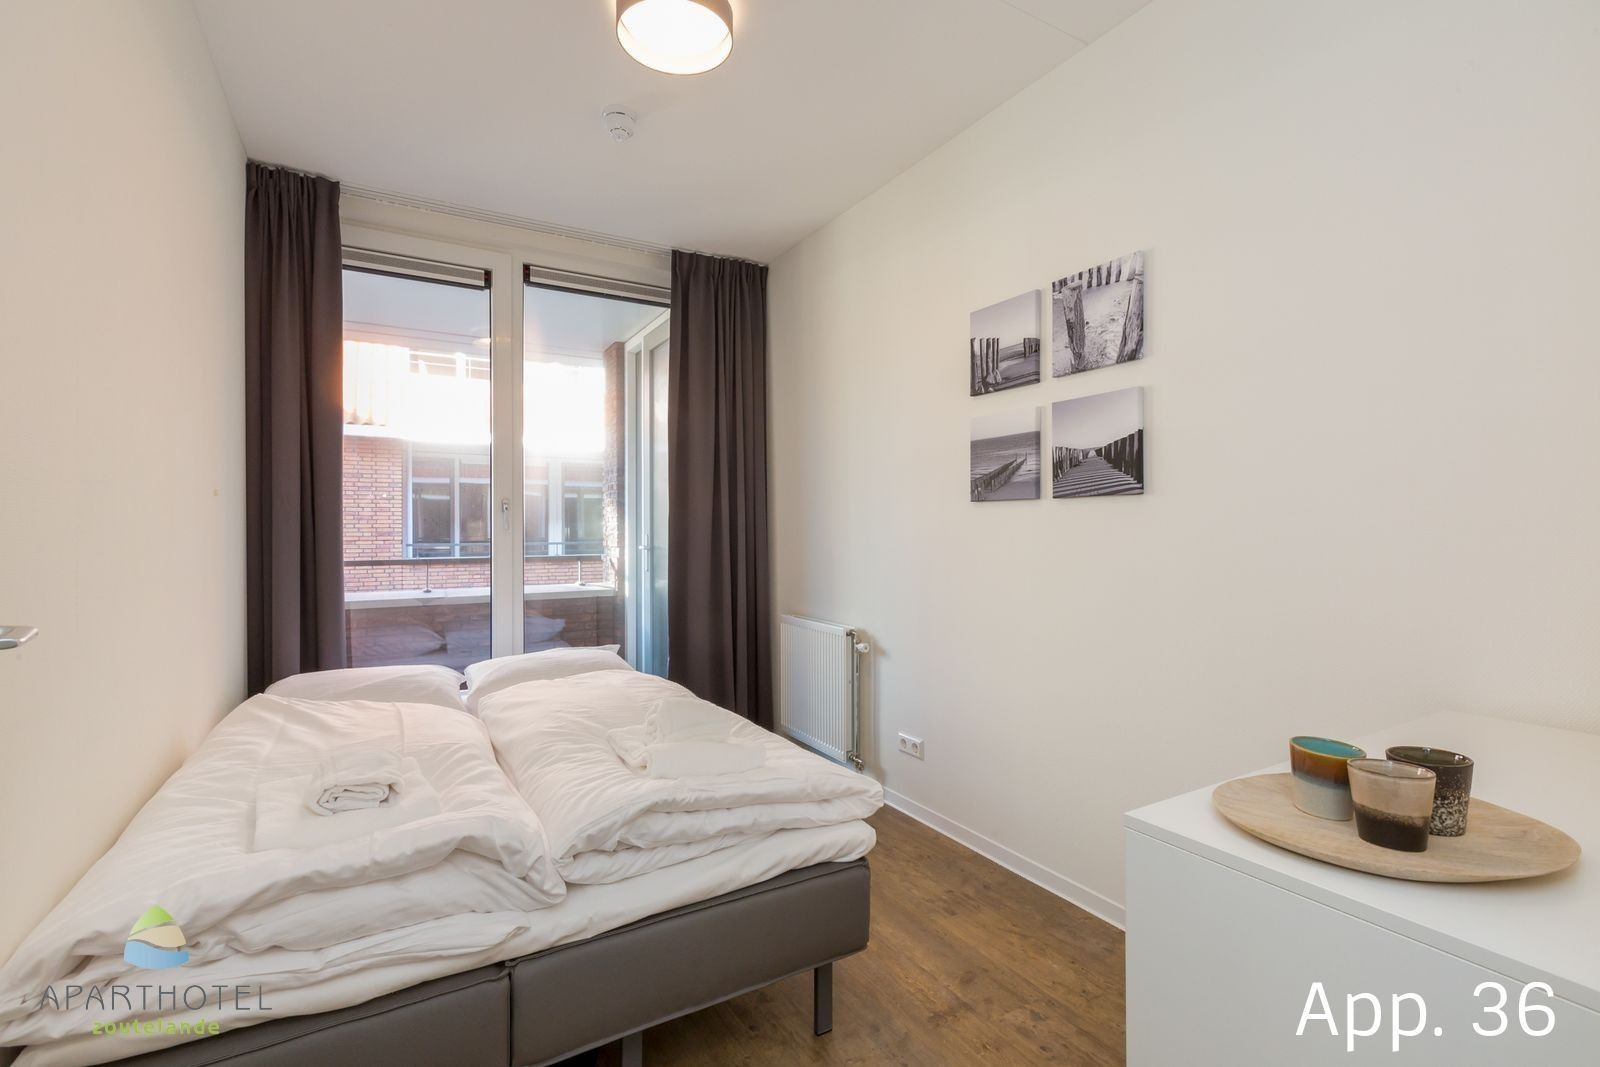 Luxuriöses Appartement für 3 Personen